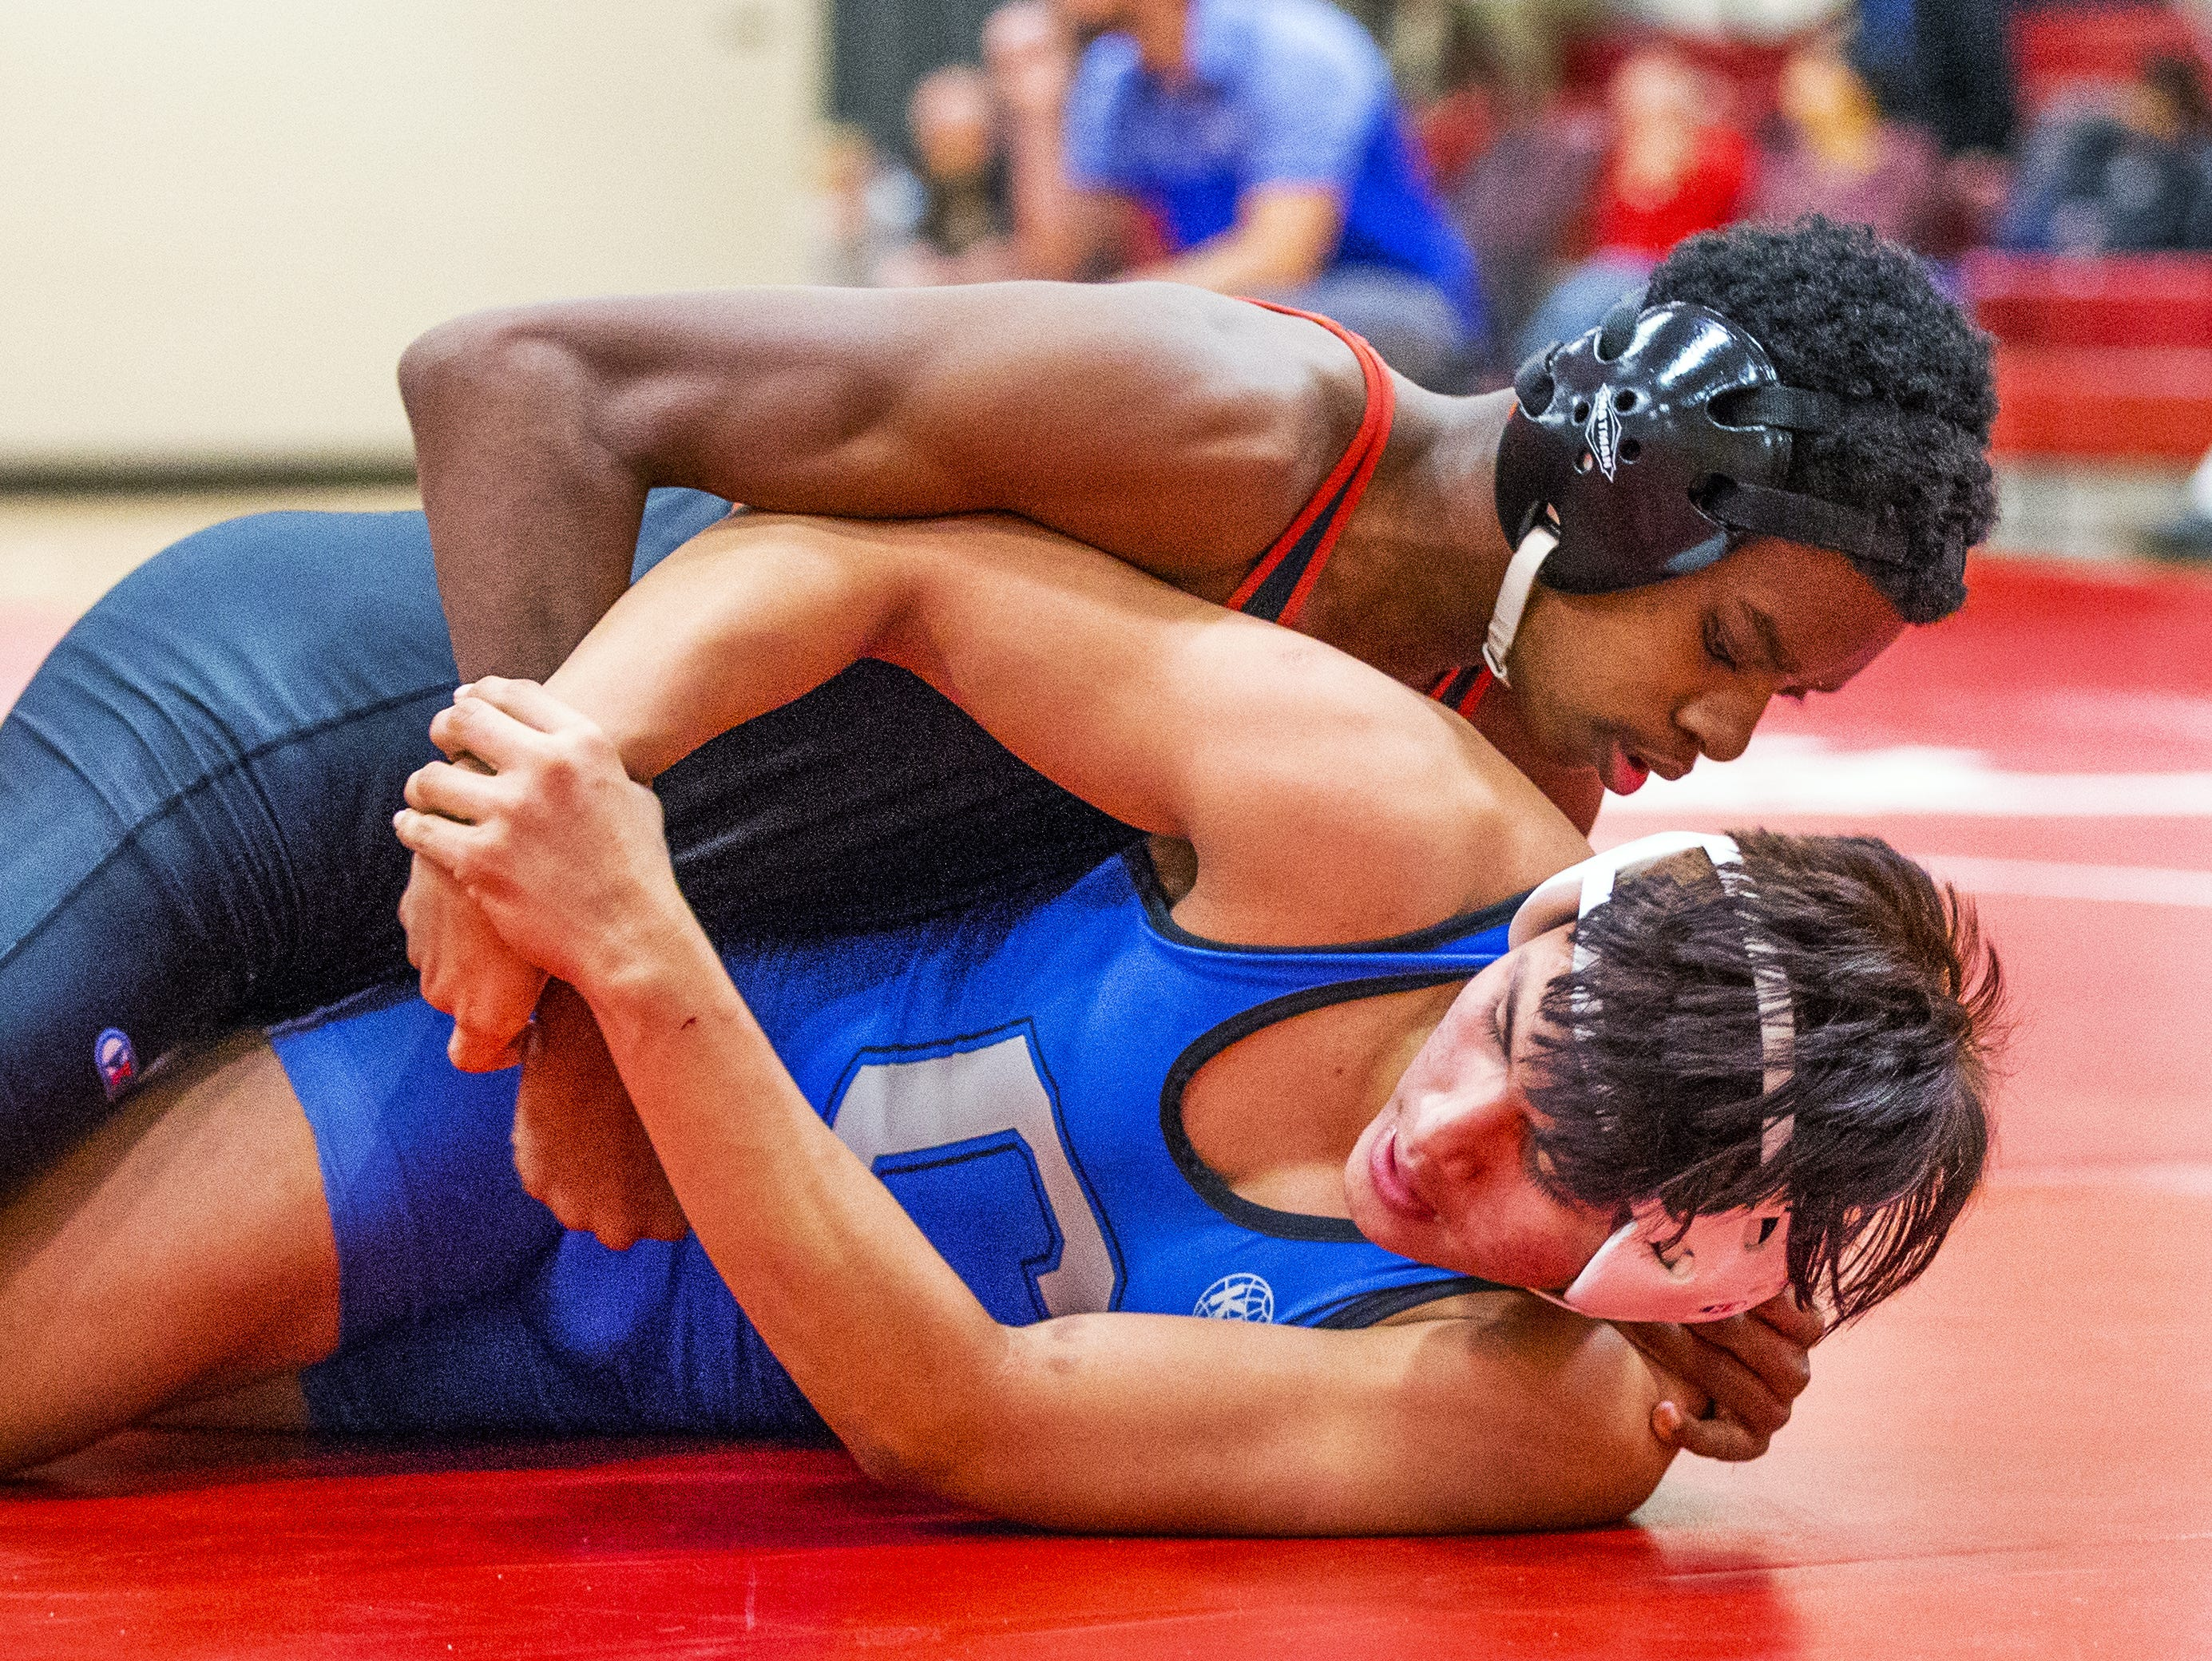 Adonis Watt, on top, is a blind wrestler for Brophy College Preparatory high school in Phoenix.  He takes on Chandler High School wrestler Kevin Rodriguez in the 152 lb. class at Brophy, Wednesday, January 23, 2019.  Watt won with a pin in the third period.